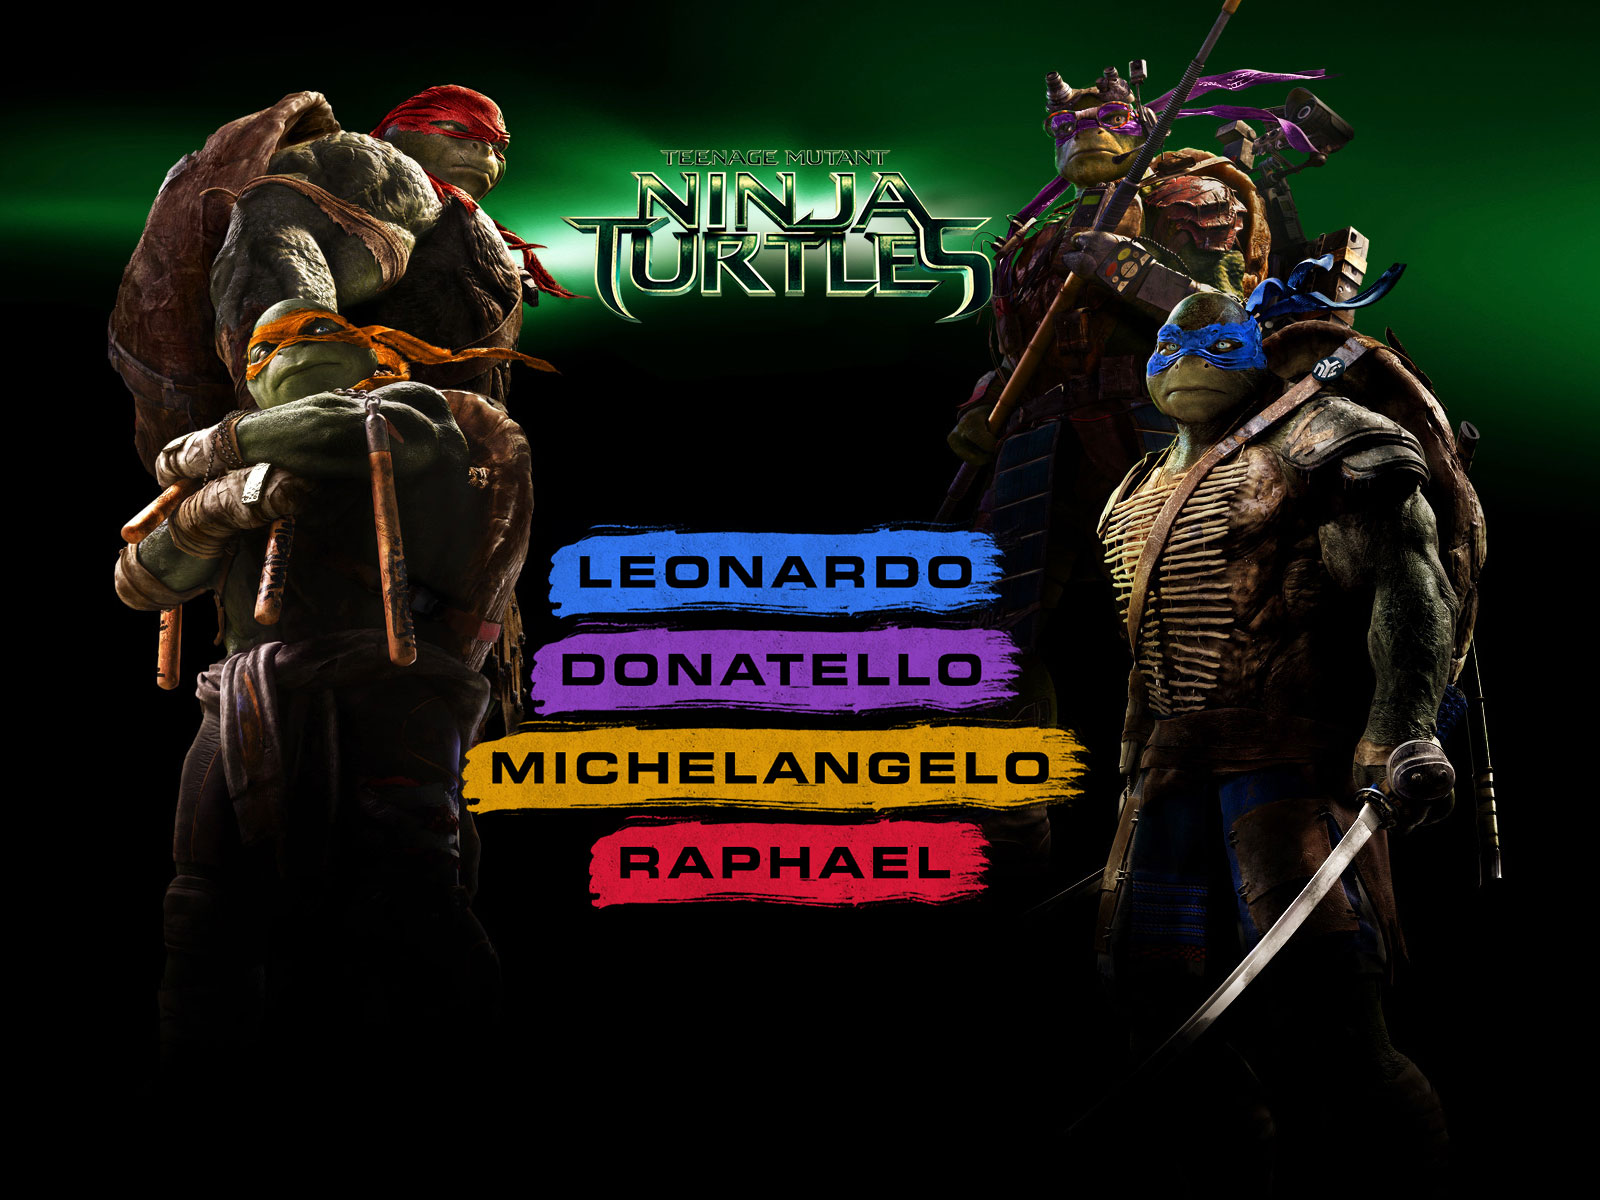 Desktop Ninja Turtles Hd Wallpapers Pixelstalk Teenage Mutant